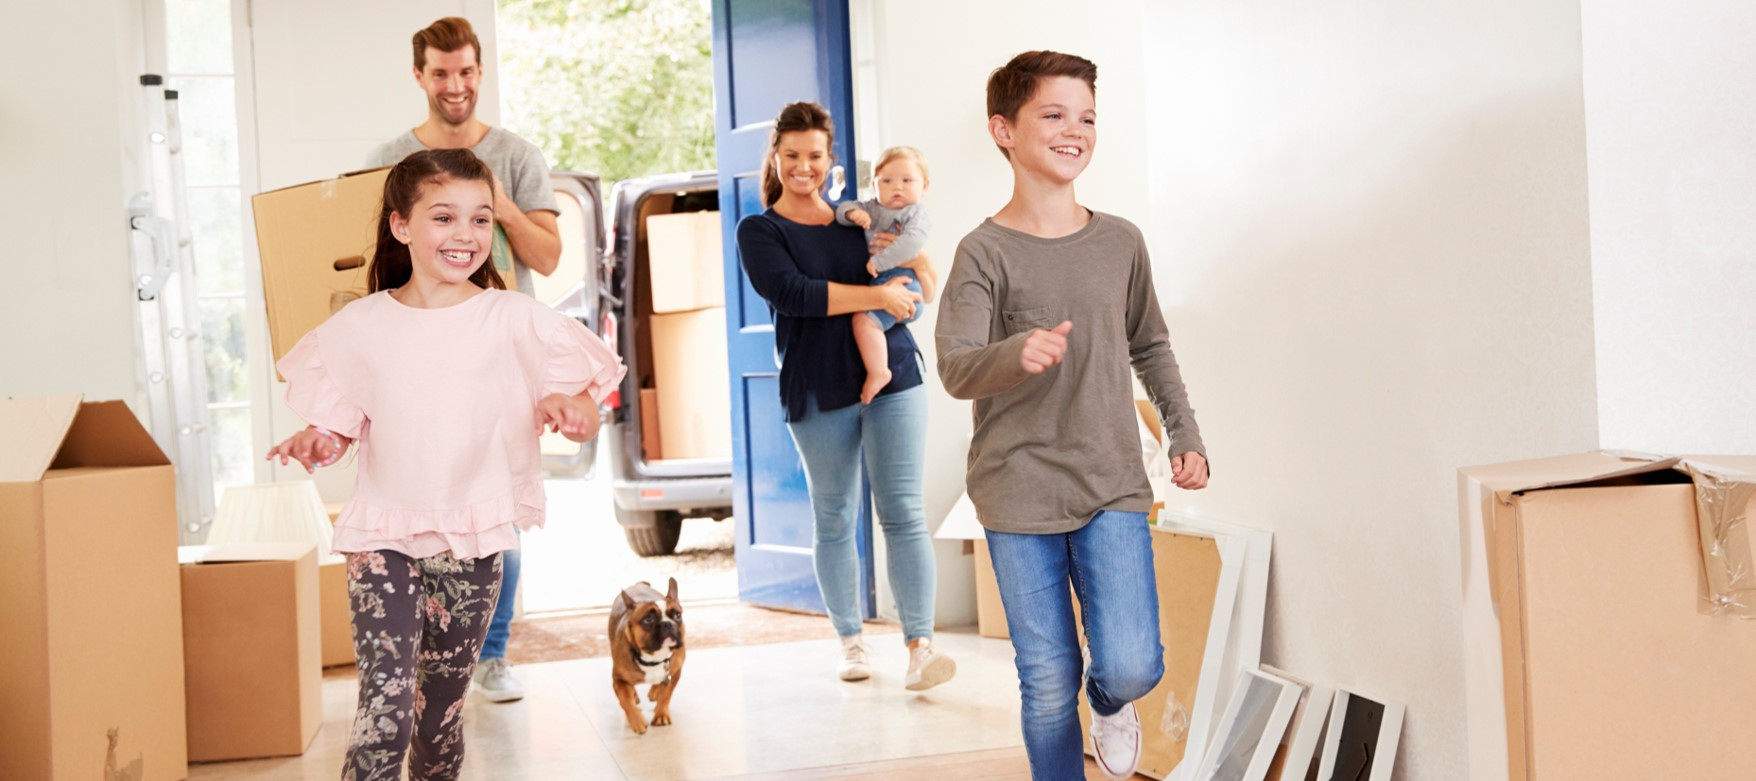 Millennials Smart Home Adoption